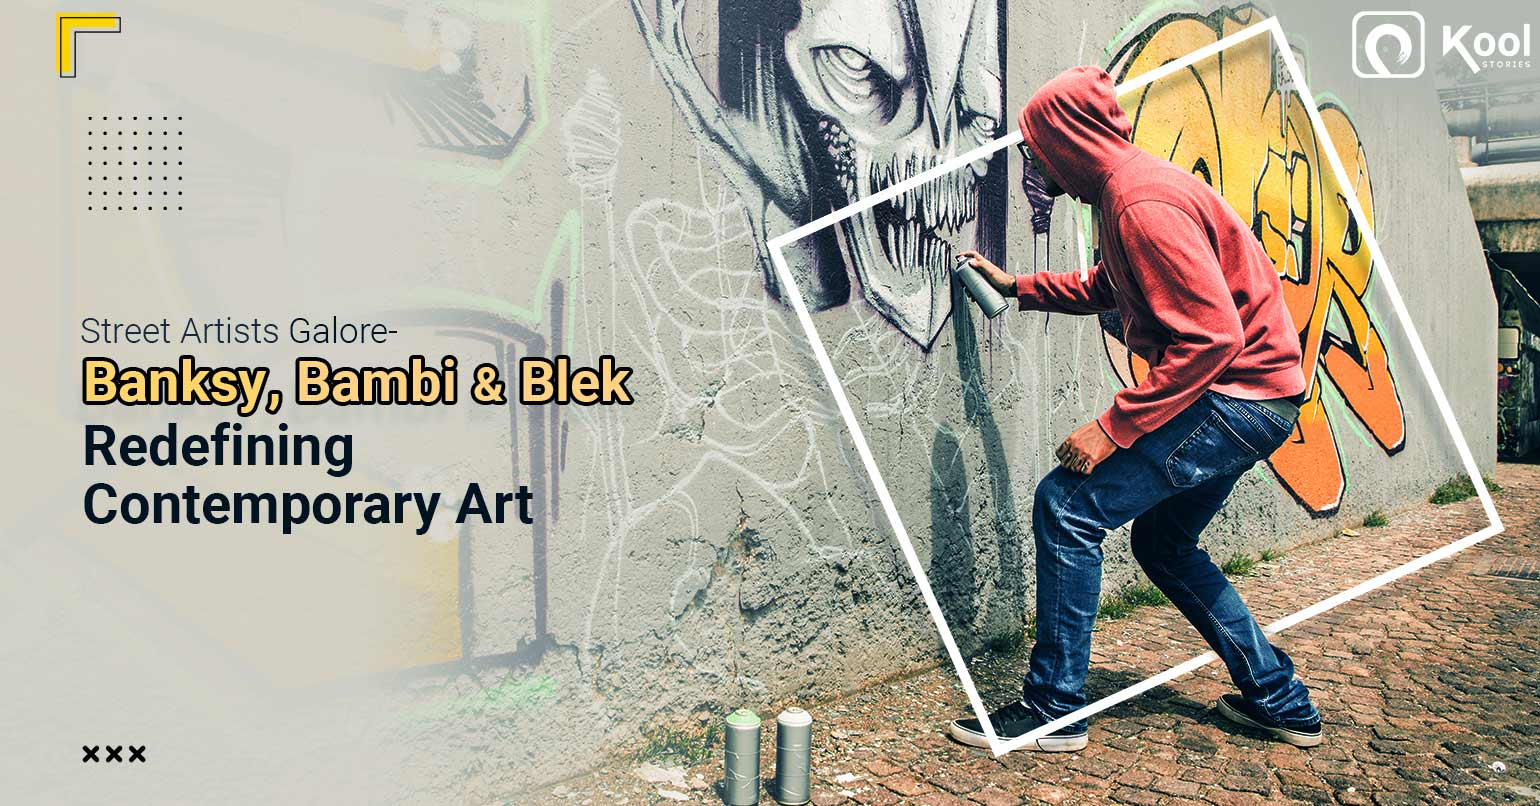 Street Artists Galore- Banksy, Bambi and Blek Redefining Contemporary Art